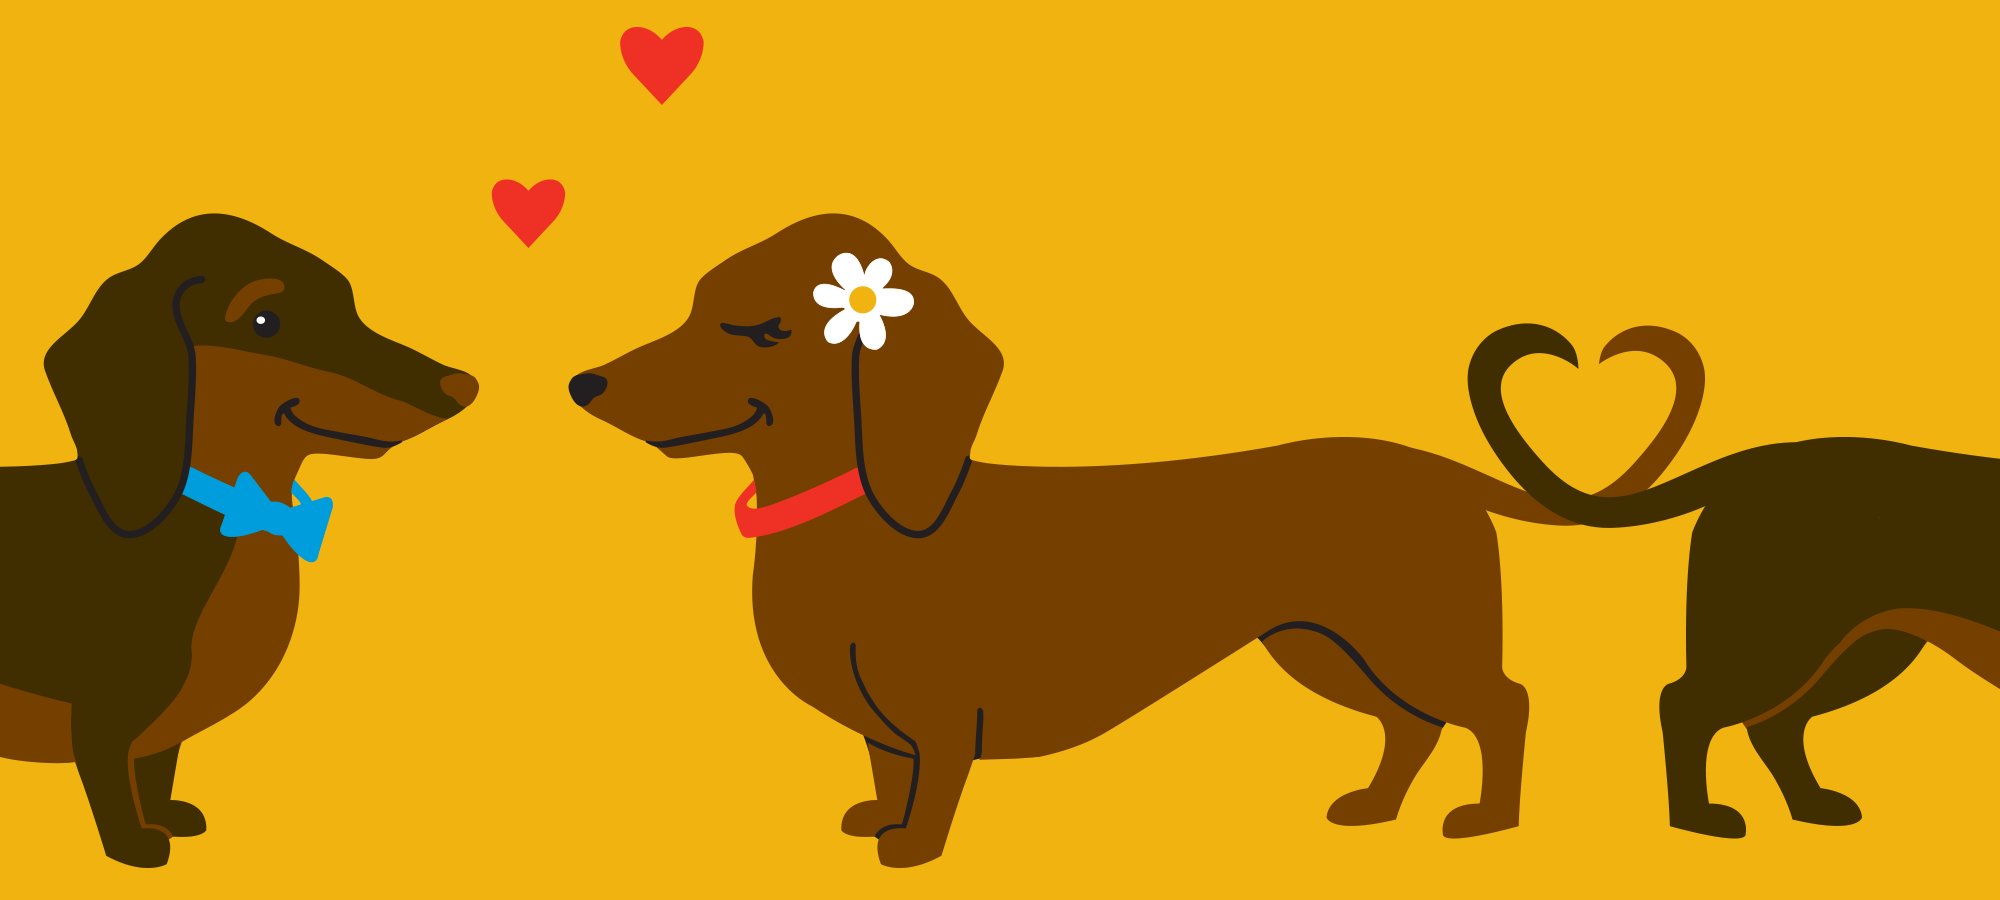 dachshund-couple-sweater/dachshundcouple-detail.png